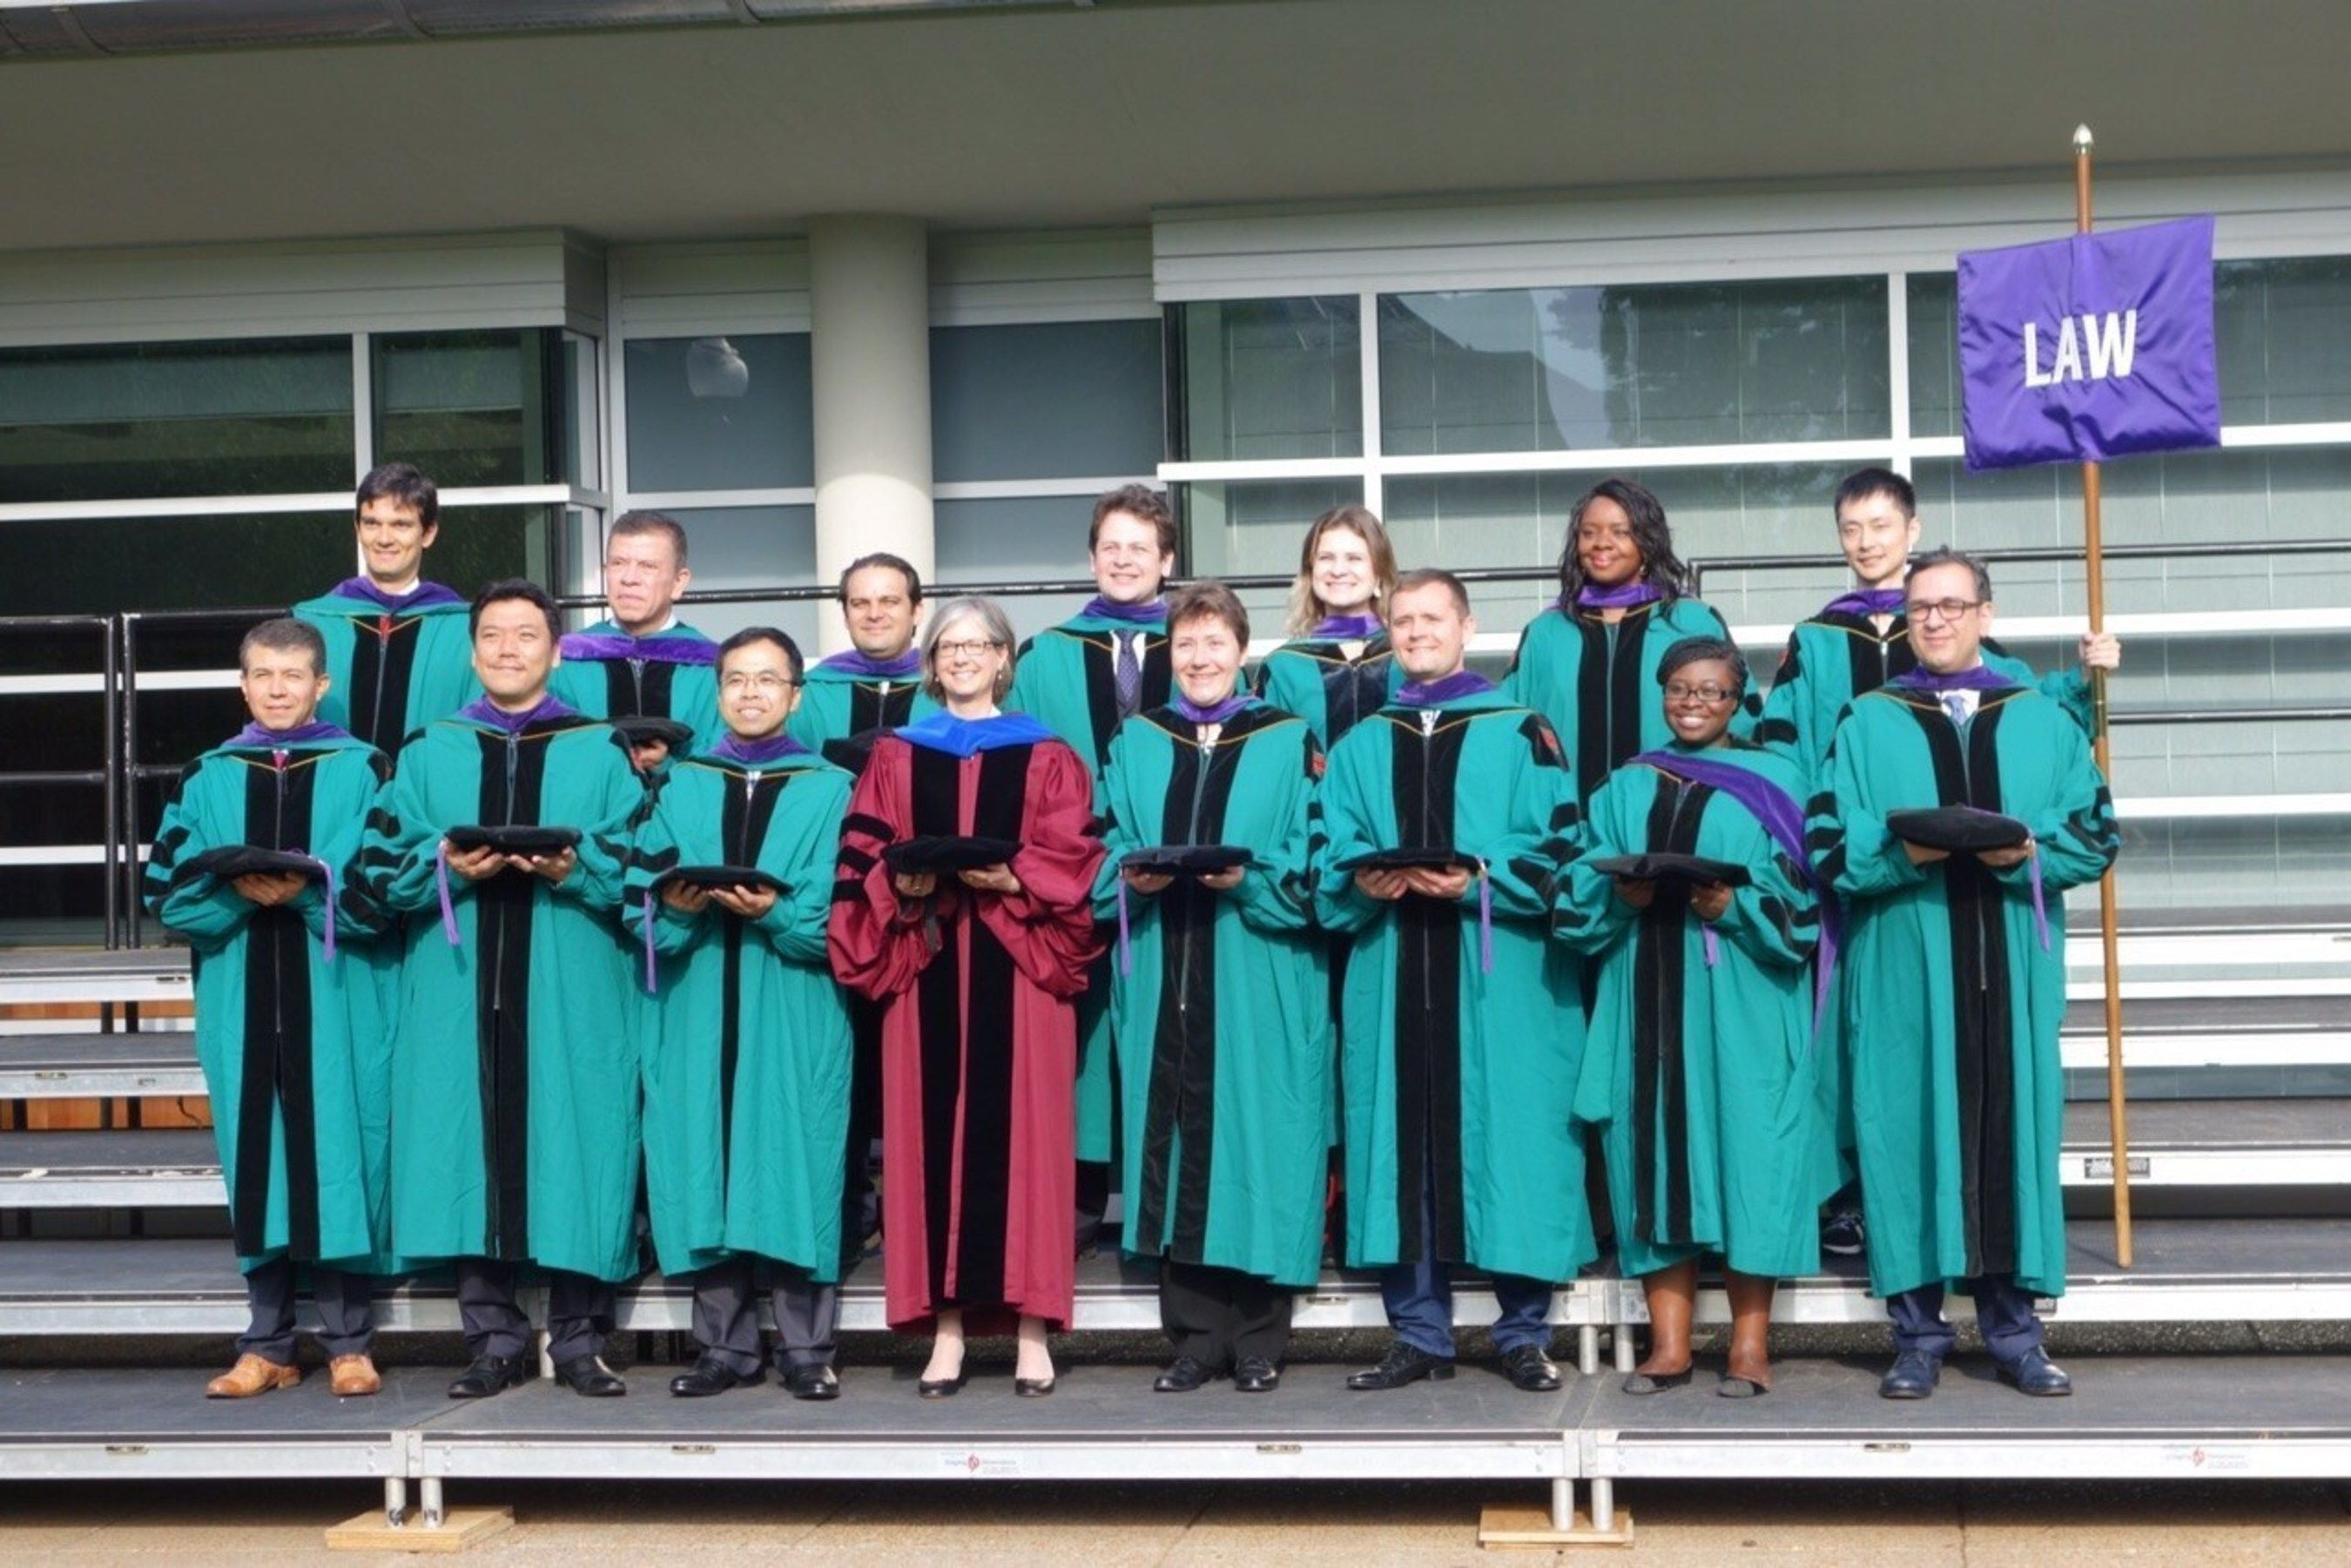 Washington University in St. Louis School of Law Graduates its First Class of Online LL.M. Students